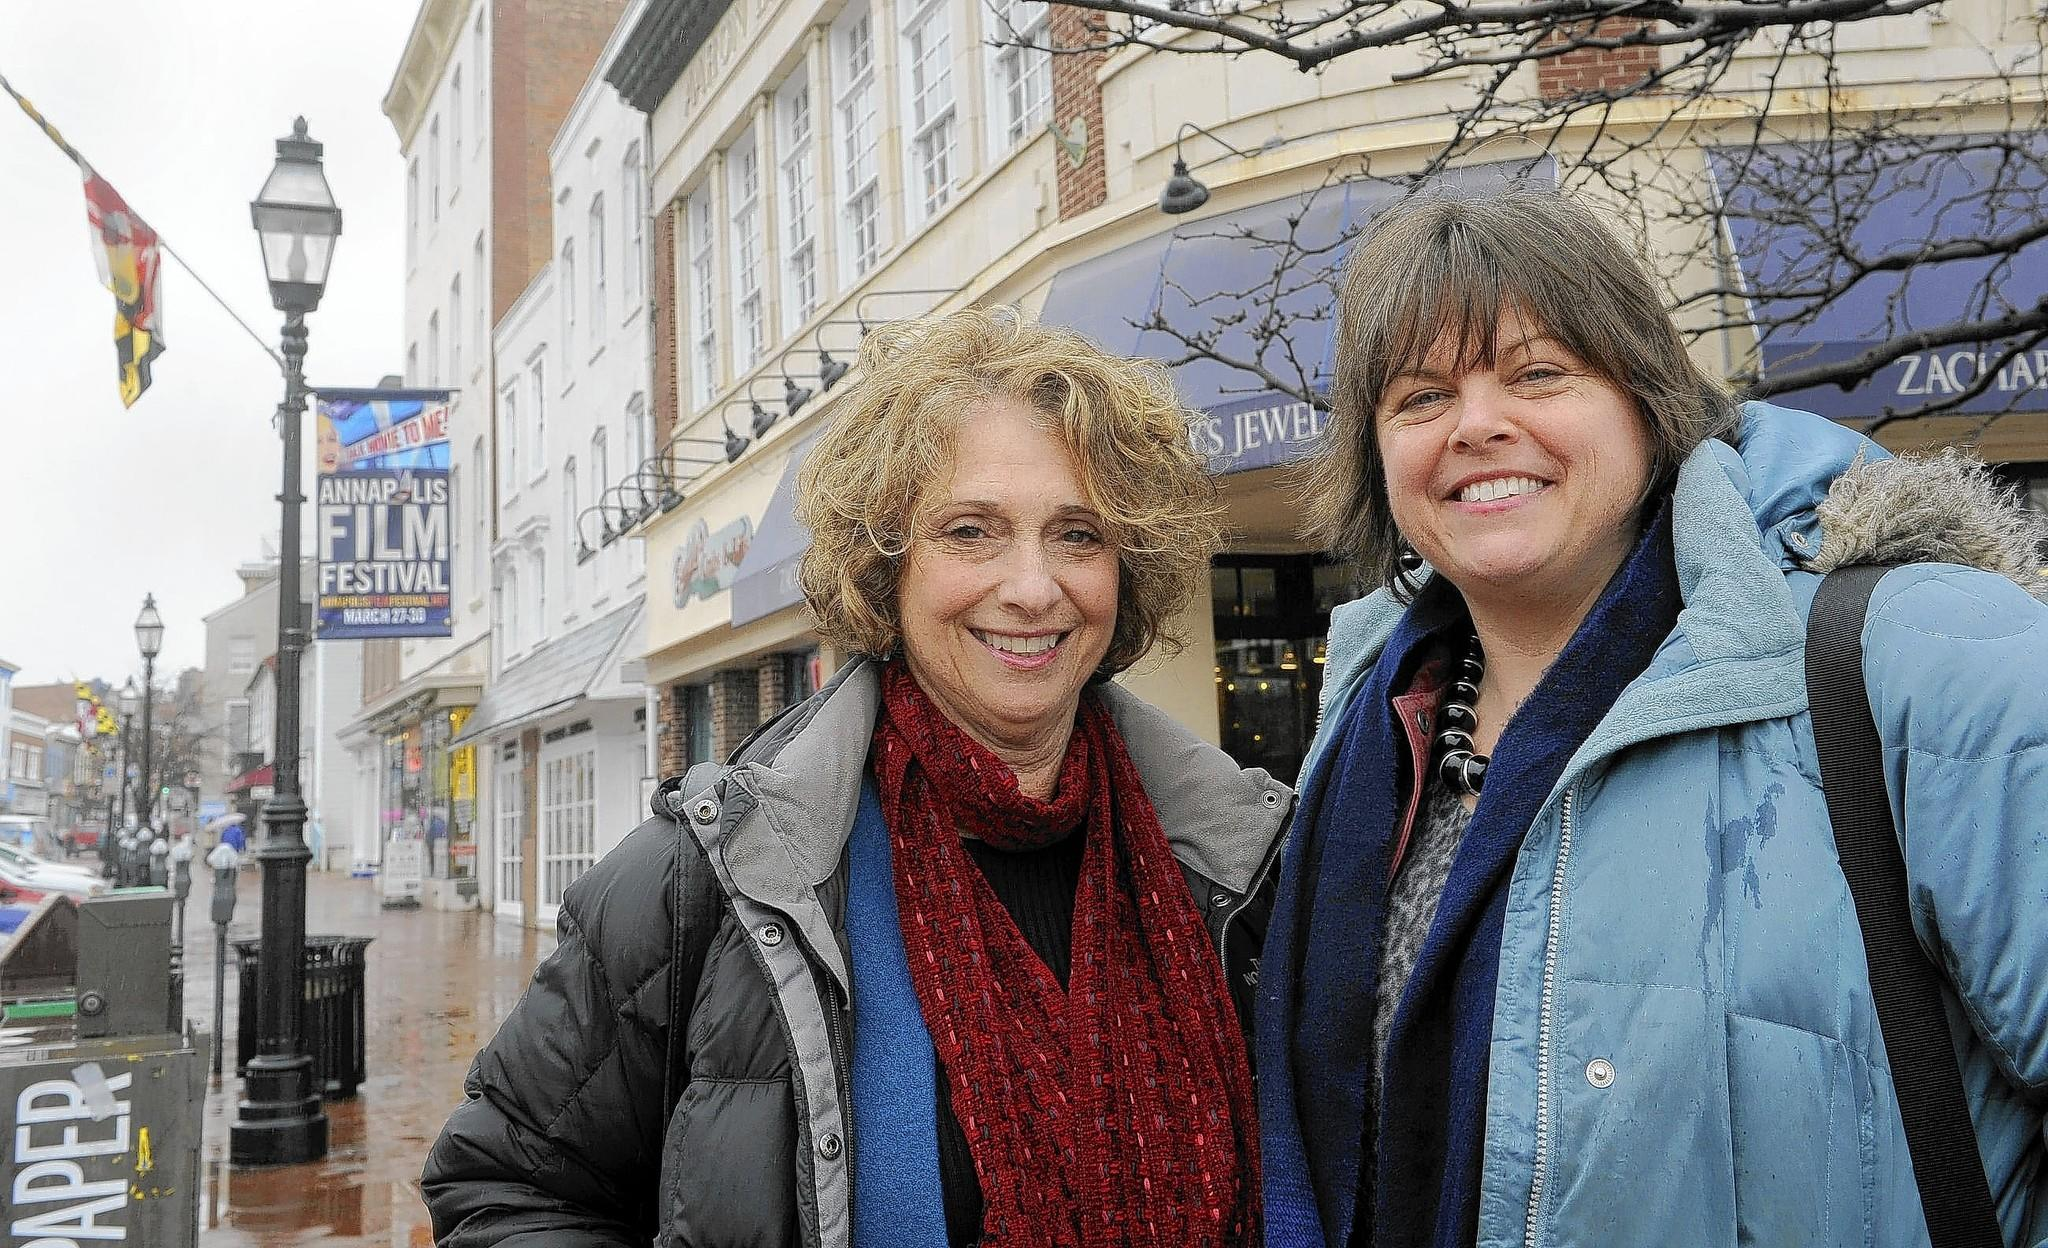 Patti White, left, and K. Lee Anderson are creative directors of the Annapolis Film Festival, which will be held later this week.